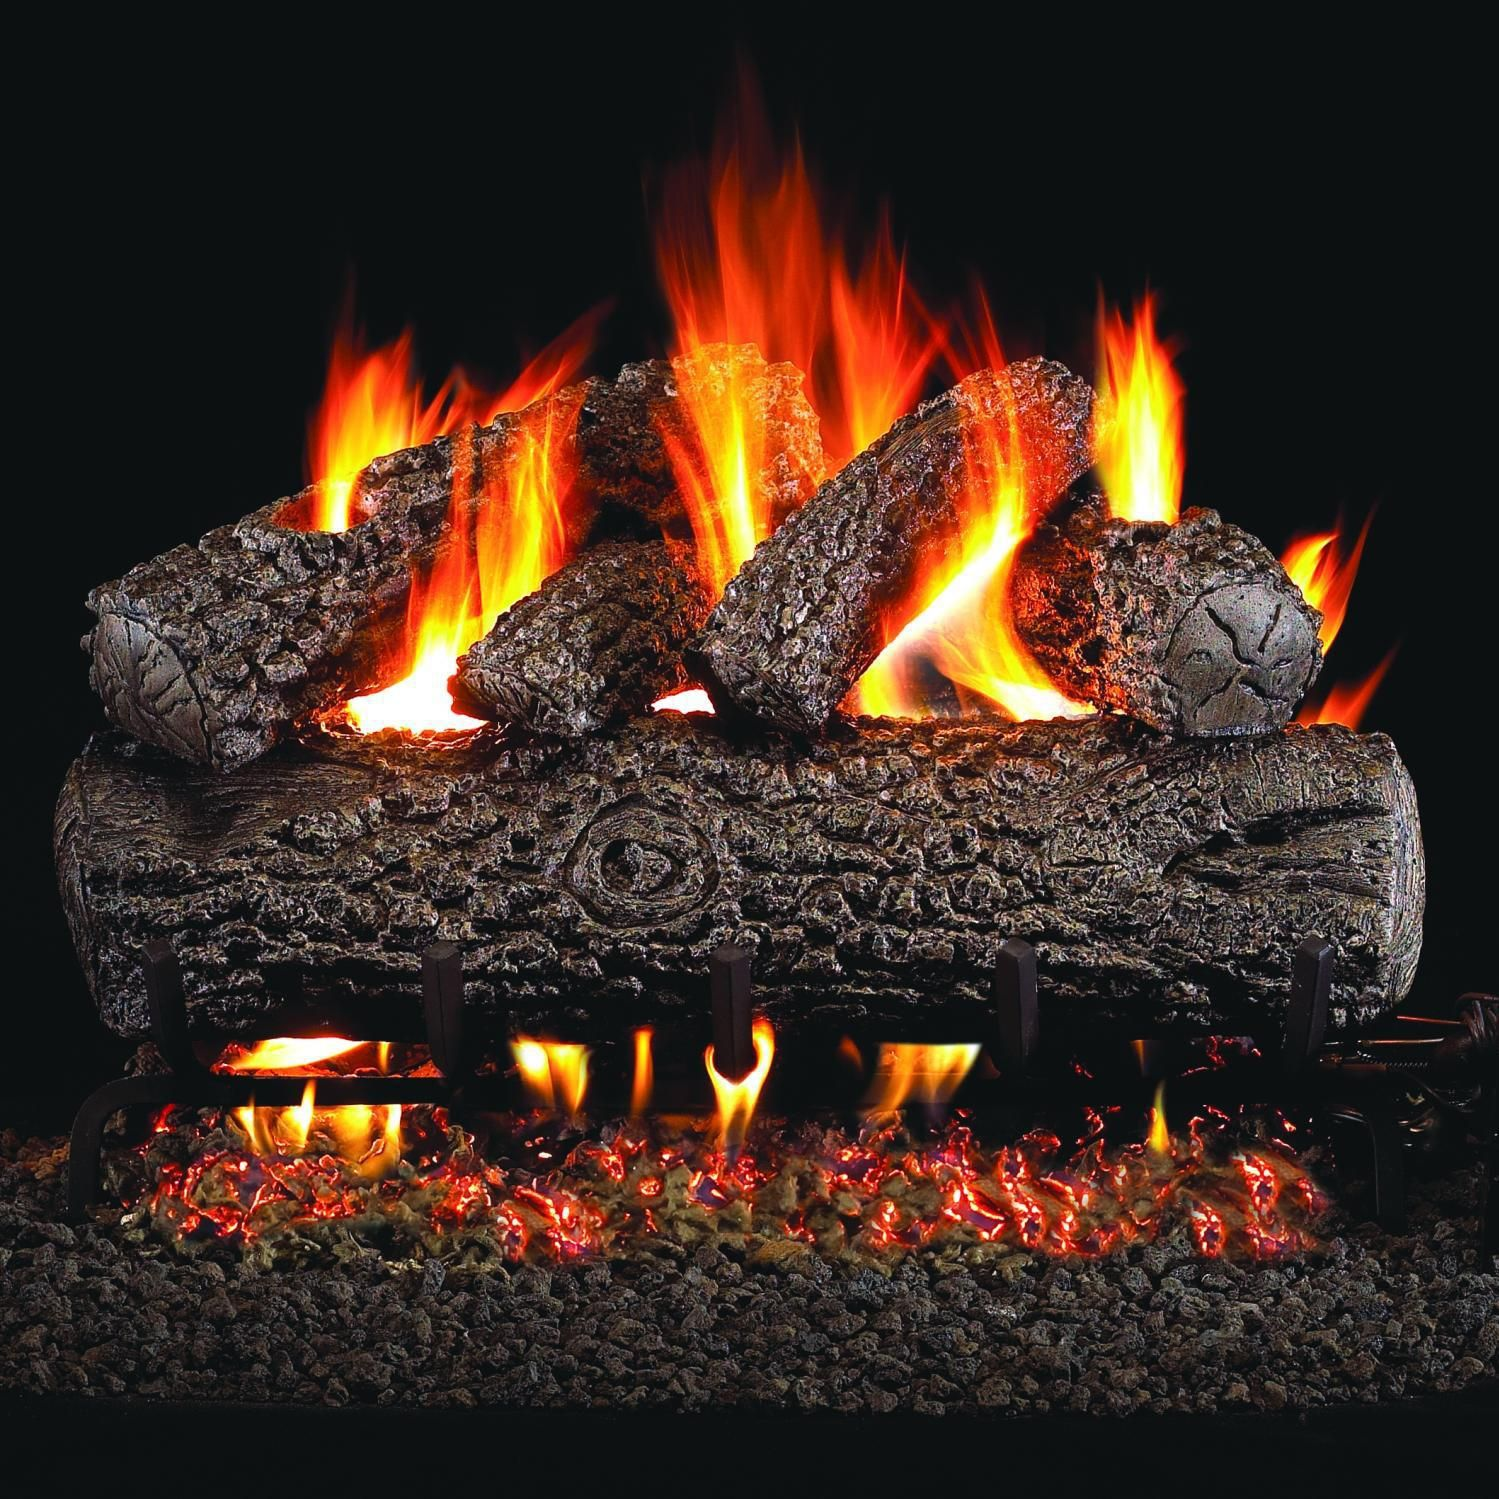 Peterson Real Fyre 24 Inch Post Oak Gas Log Set With Vented Natural Gas G45 Burner Manual Safety Pilot W Wireless On Off Wall Switch Gas Logs Fireplace Inserts Electric Logs